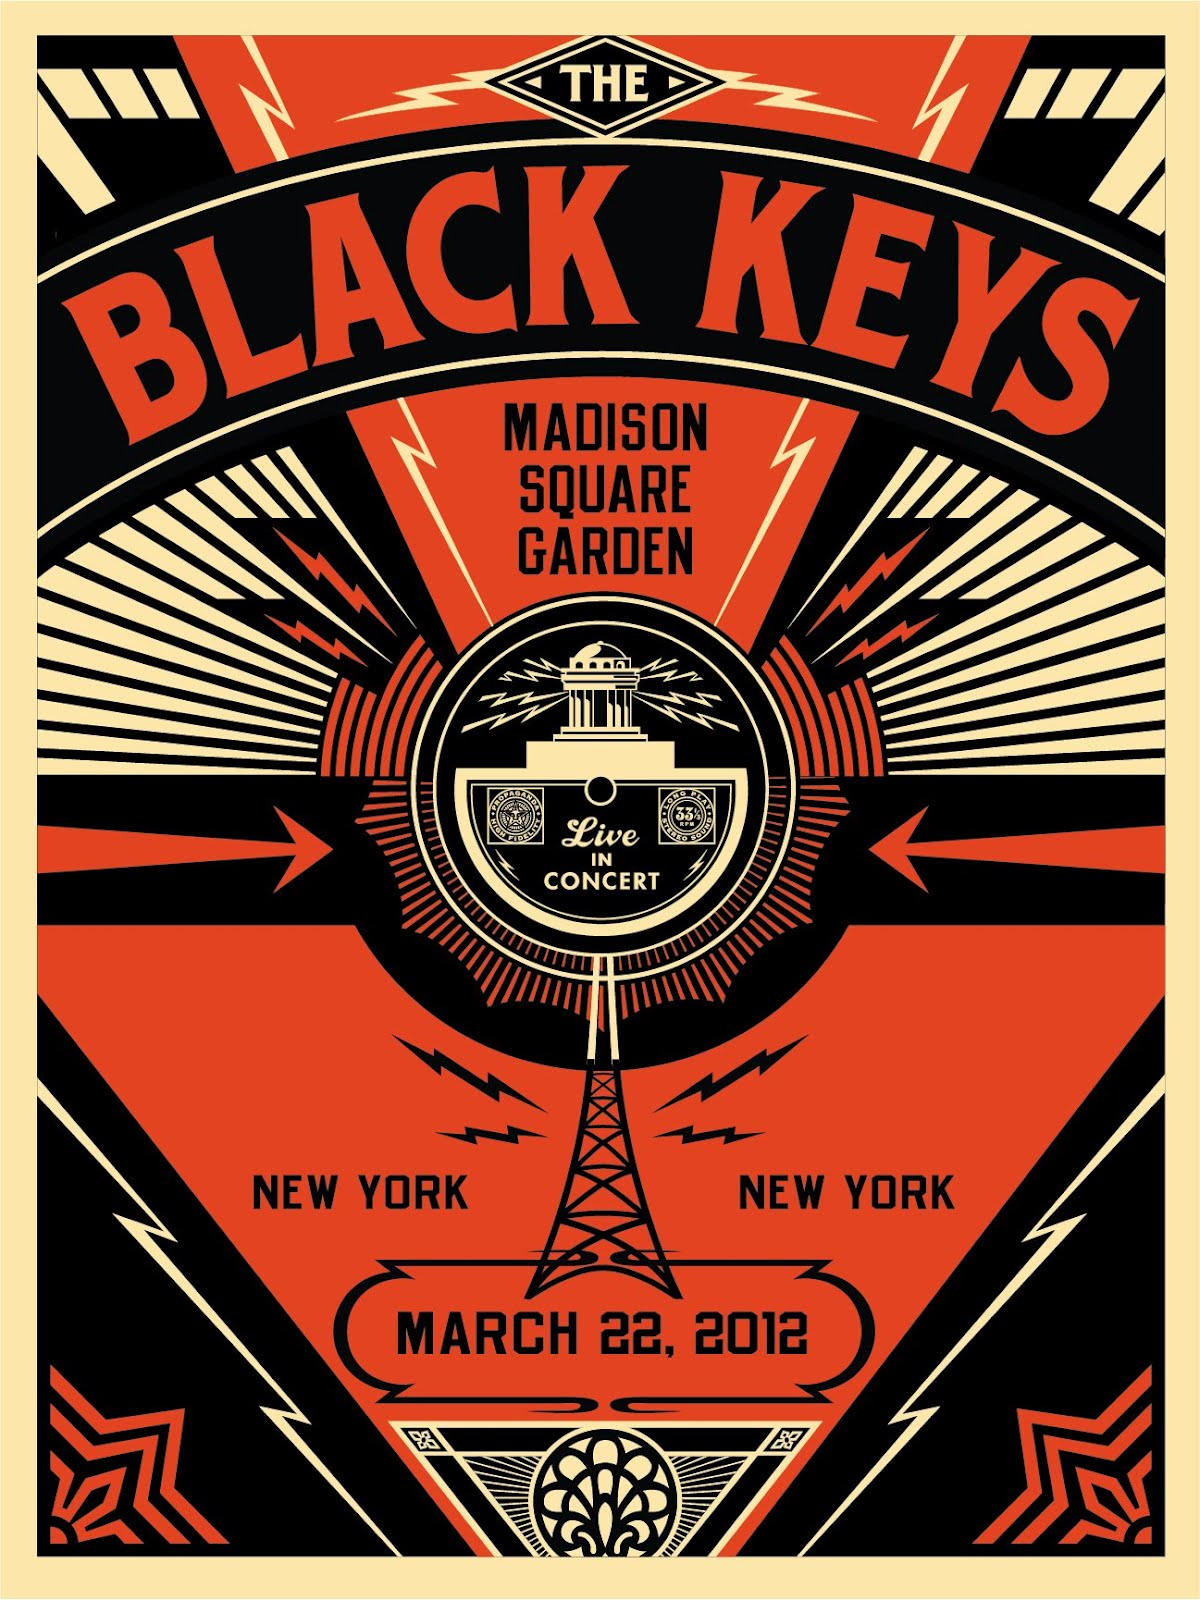 Inside the rock poster frame blog tonight 39 s the black keys poster from new york madison square for Madison square garden concert tonight